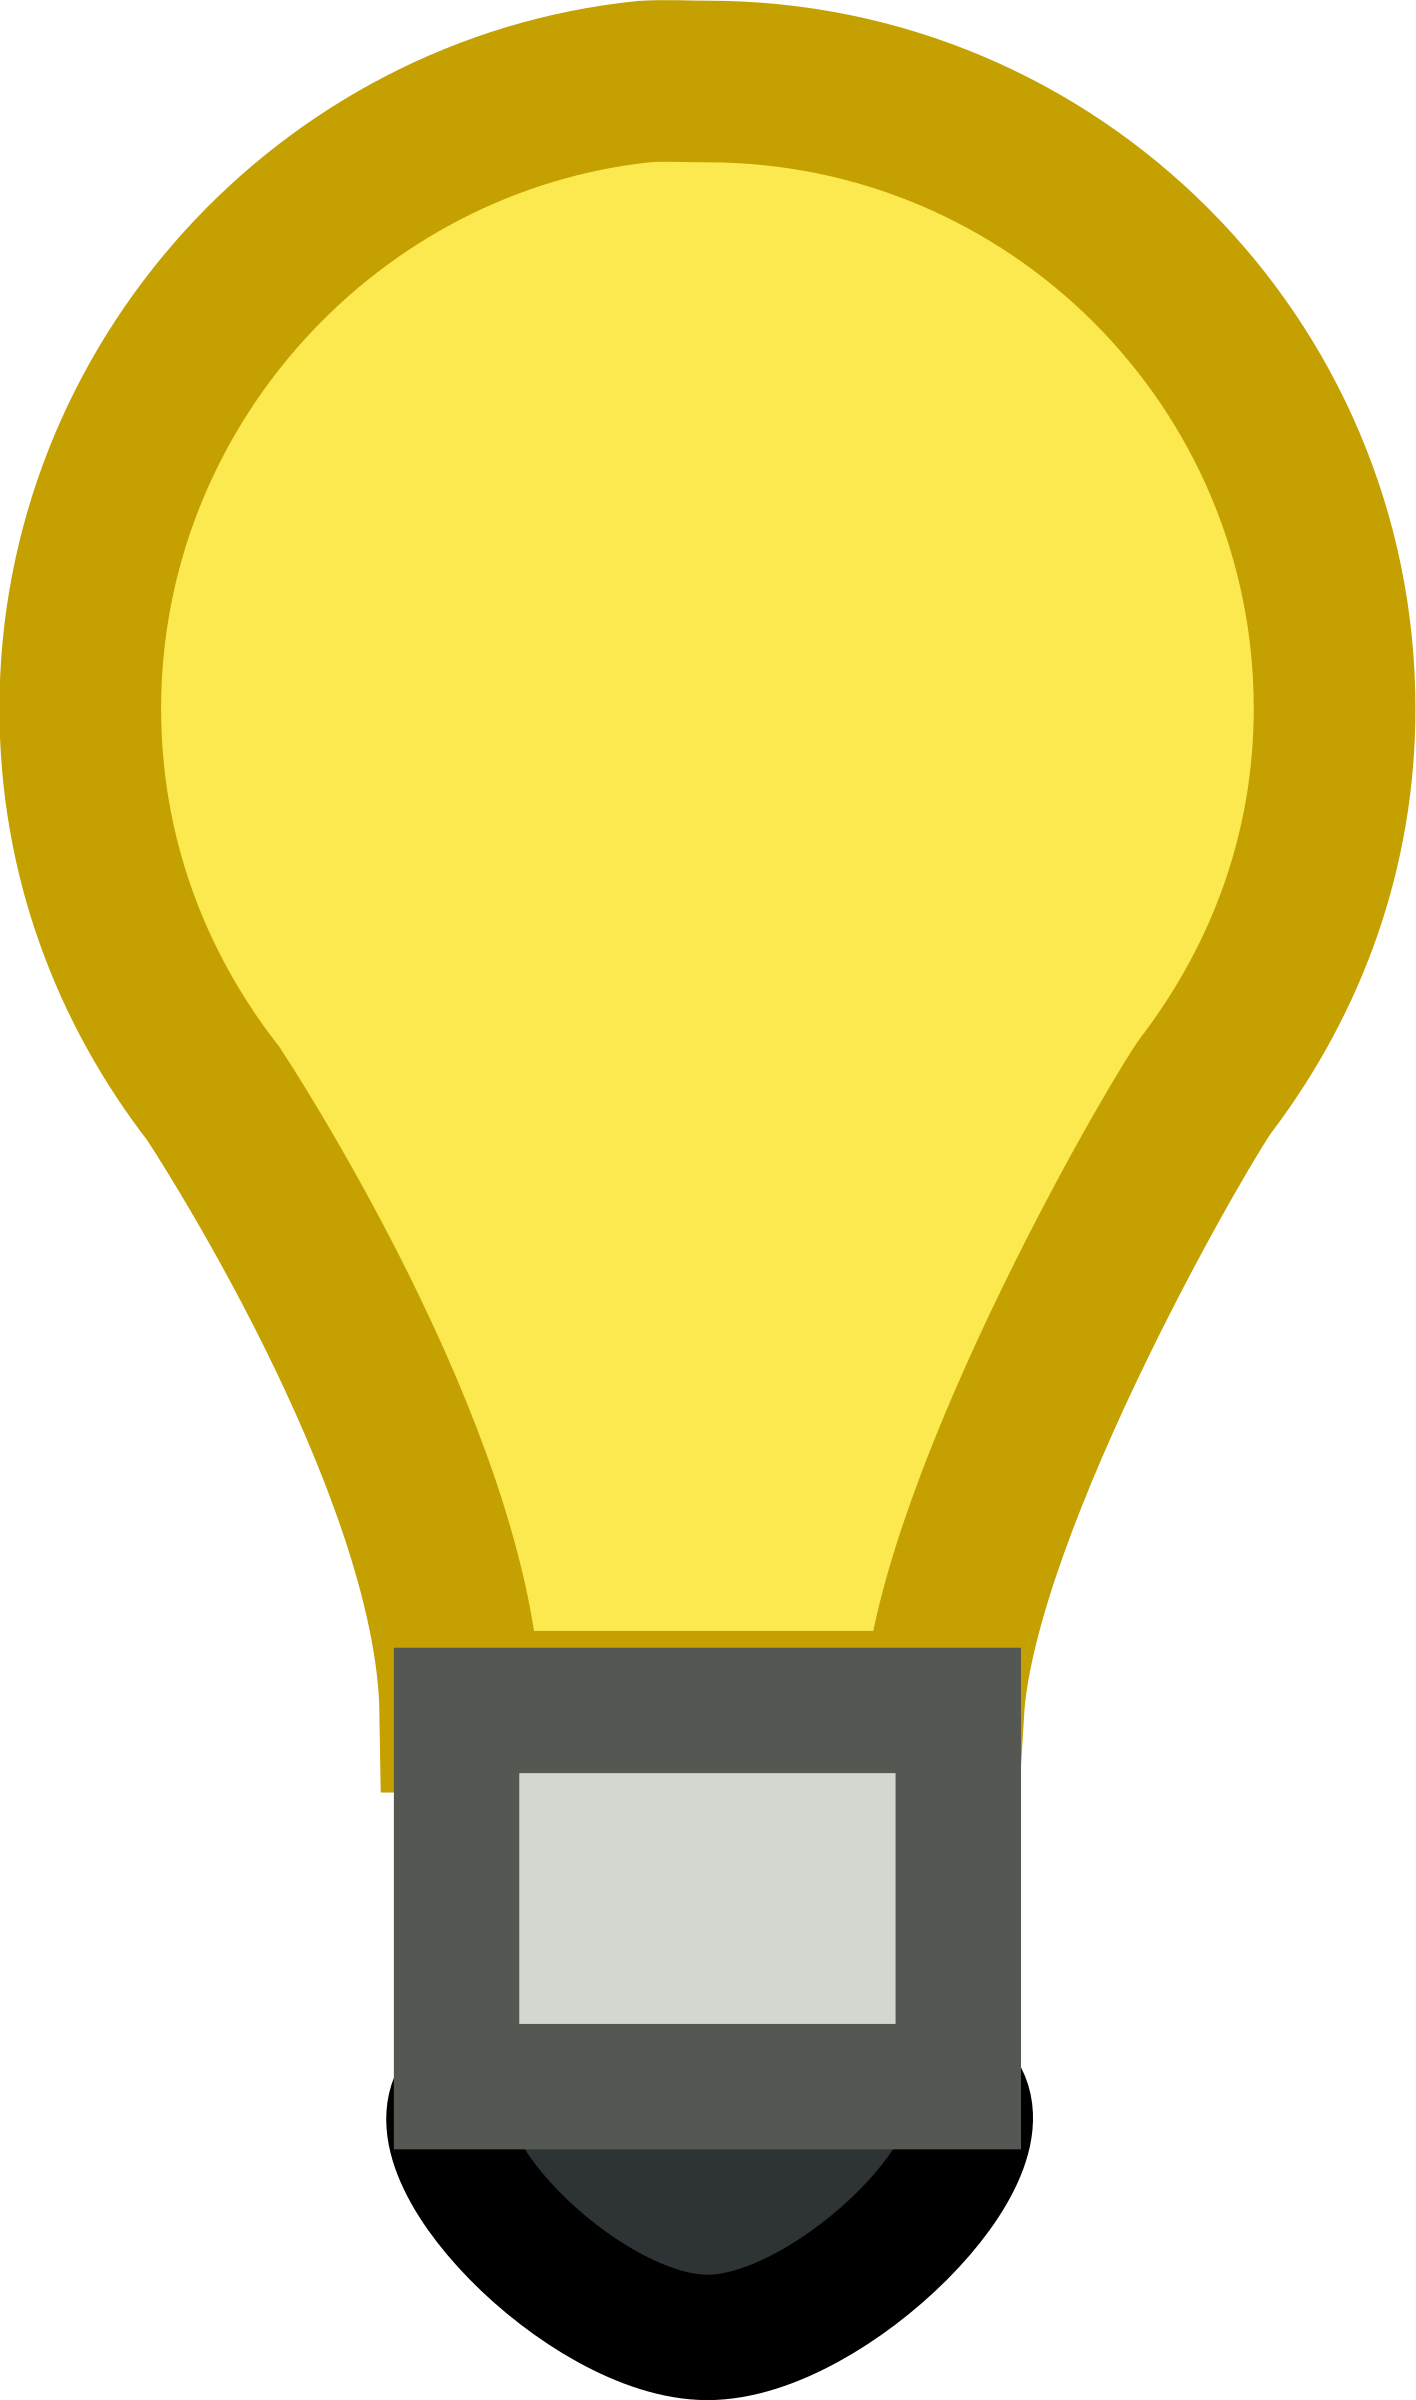 Light big image png. Lamp clipart animation